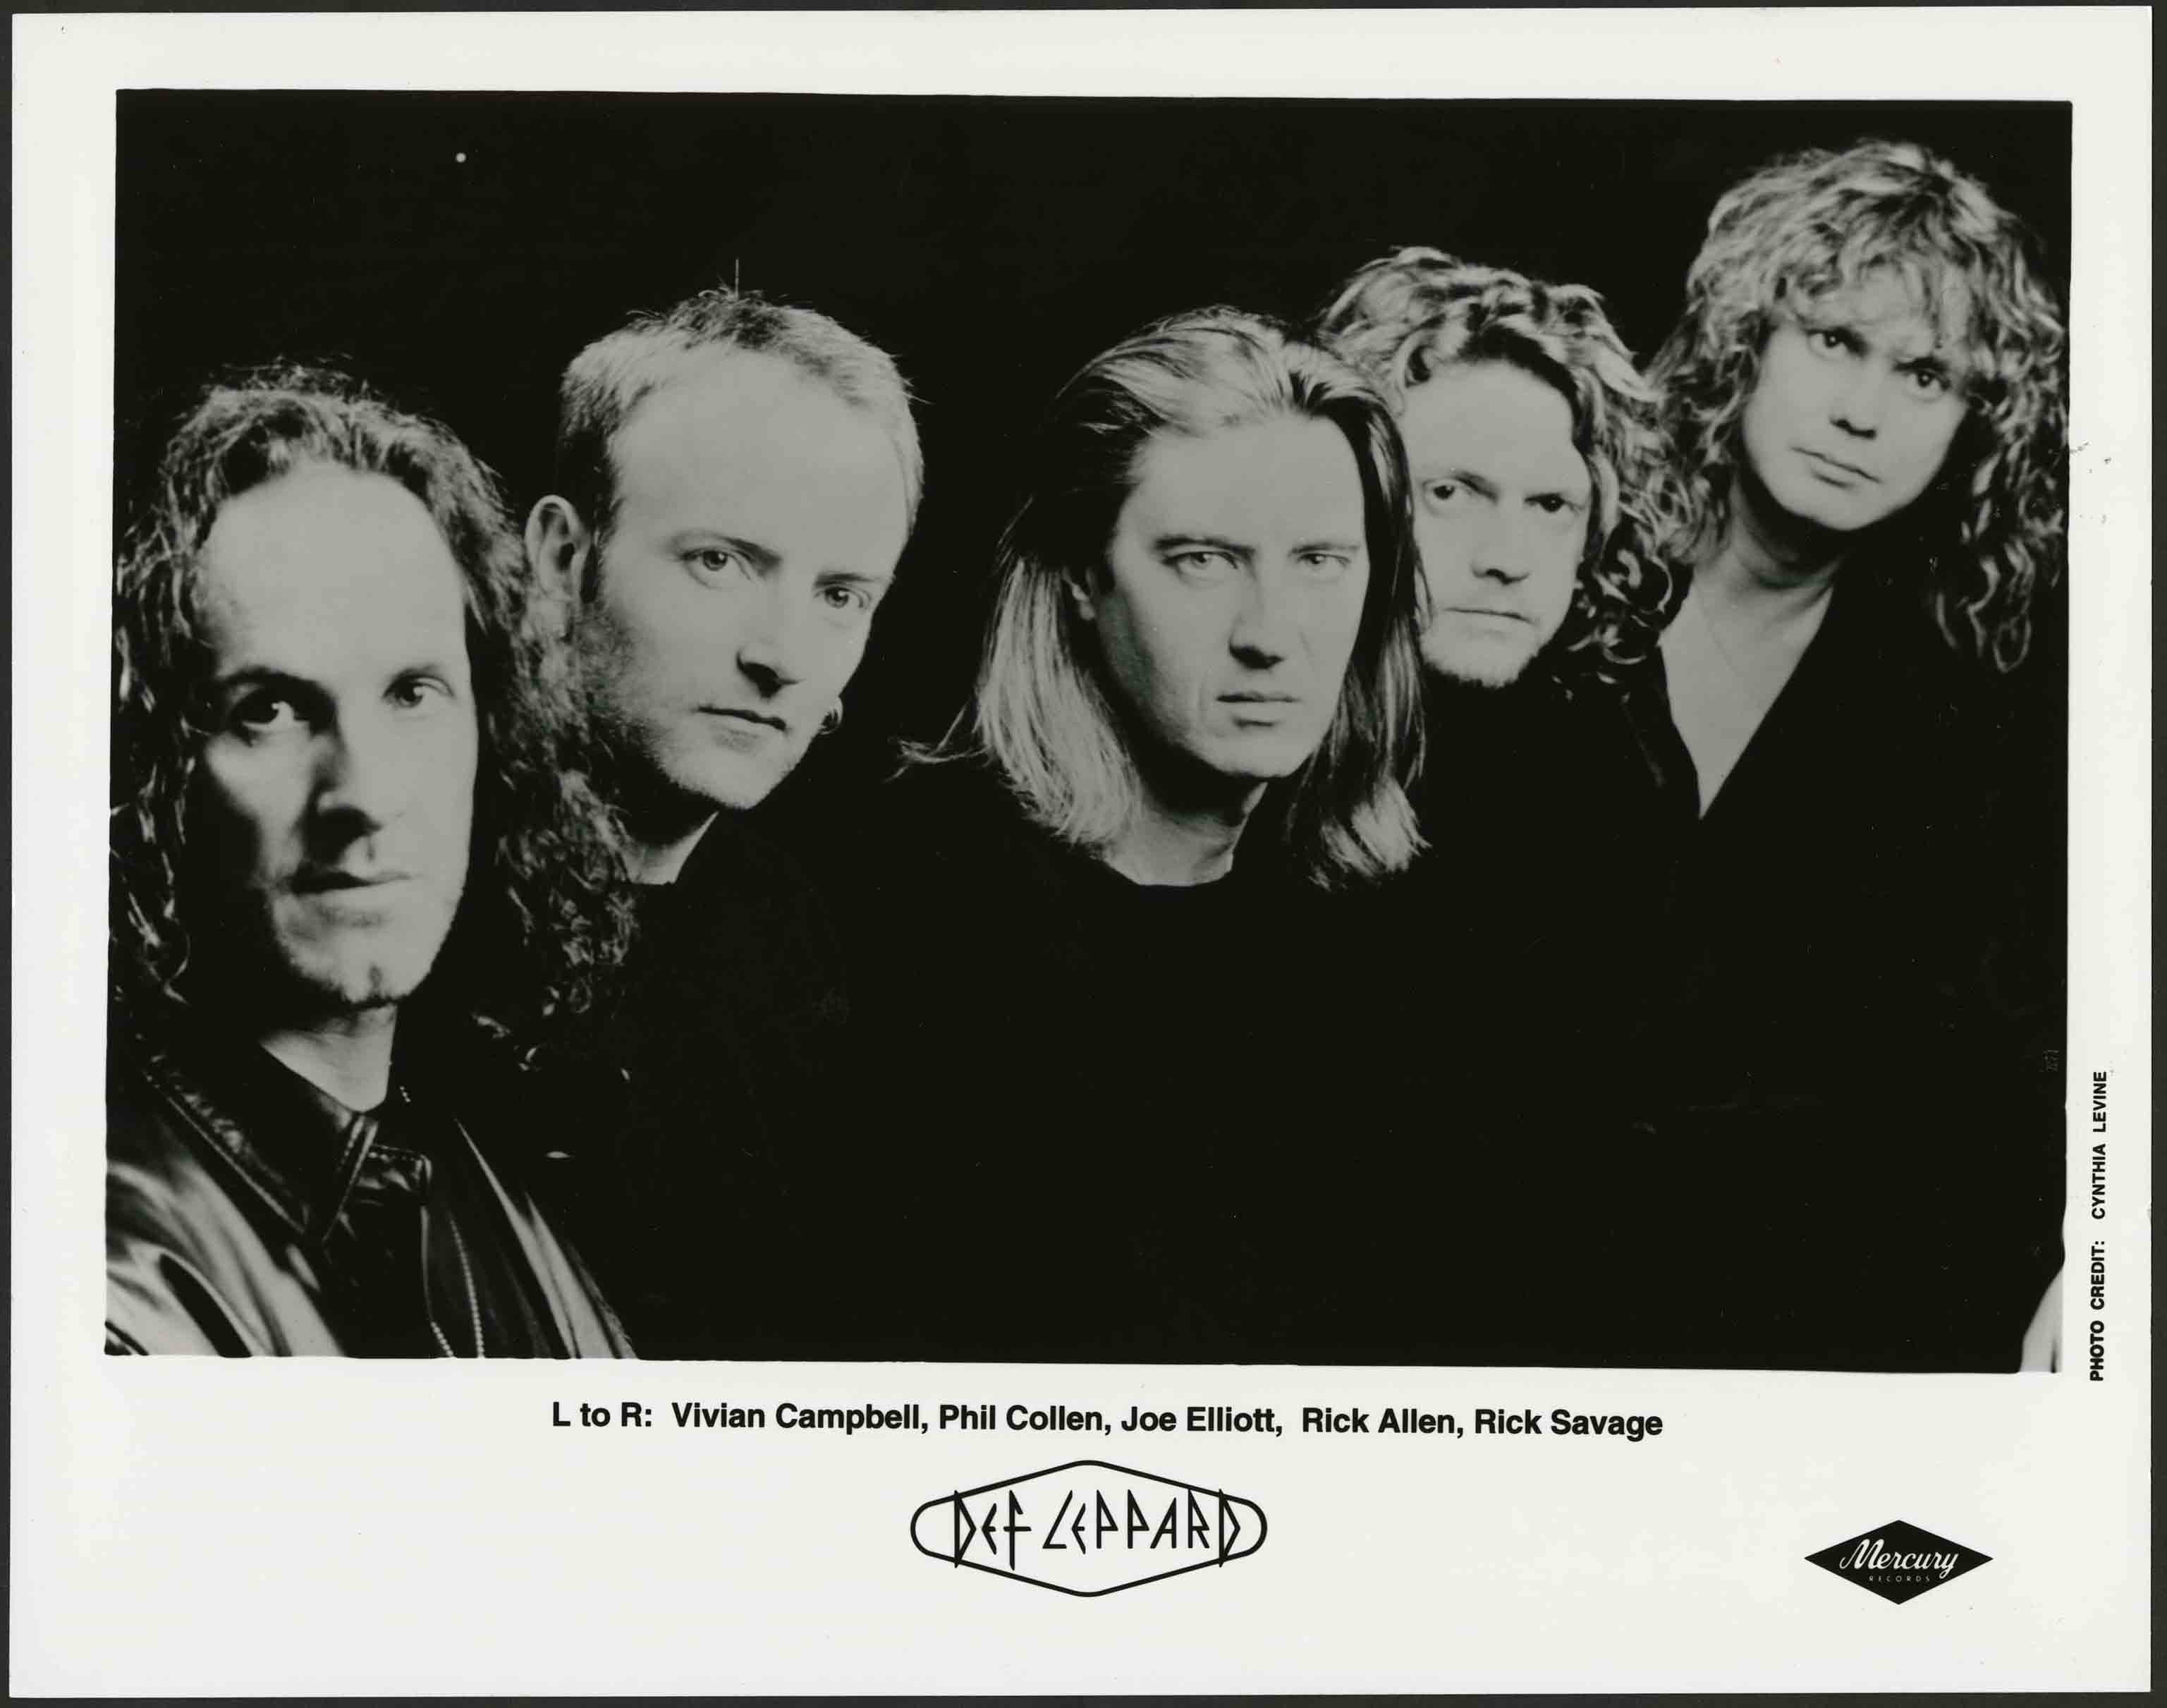 Def Leppard promo photo